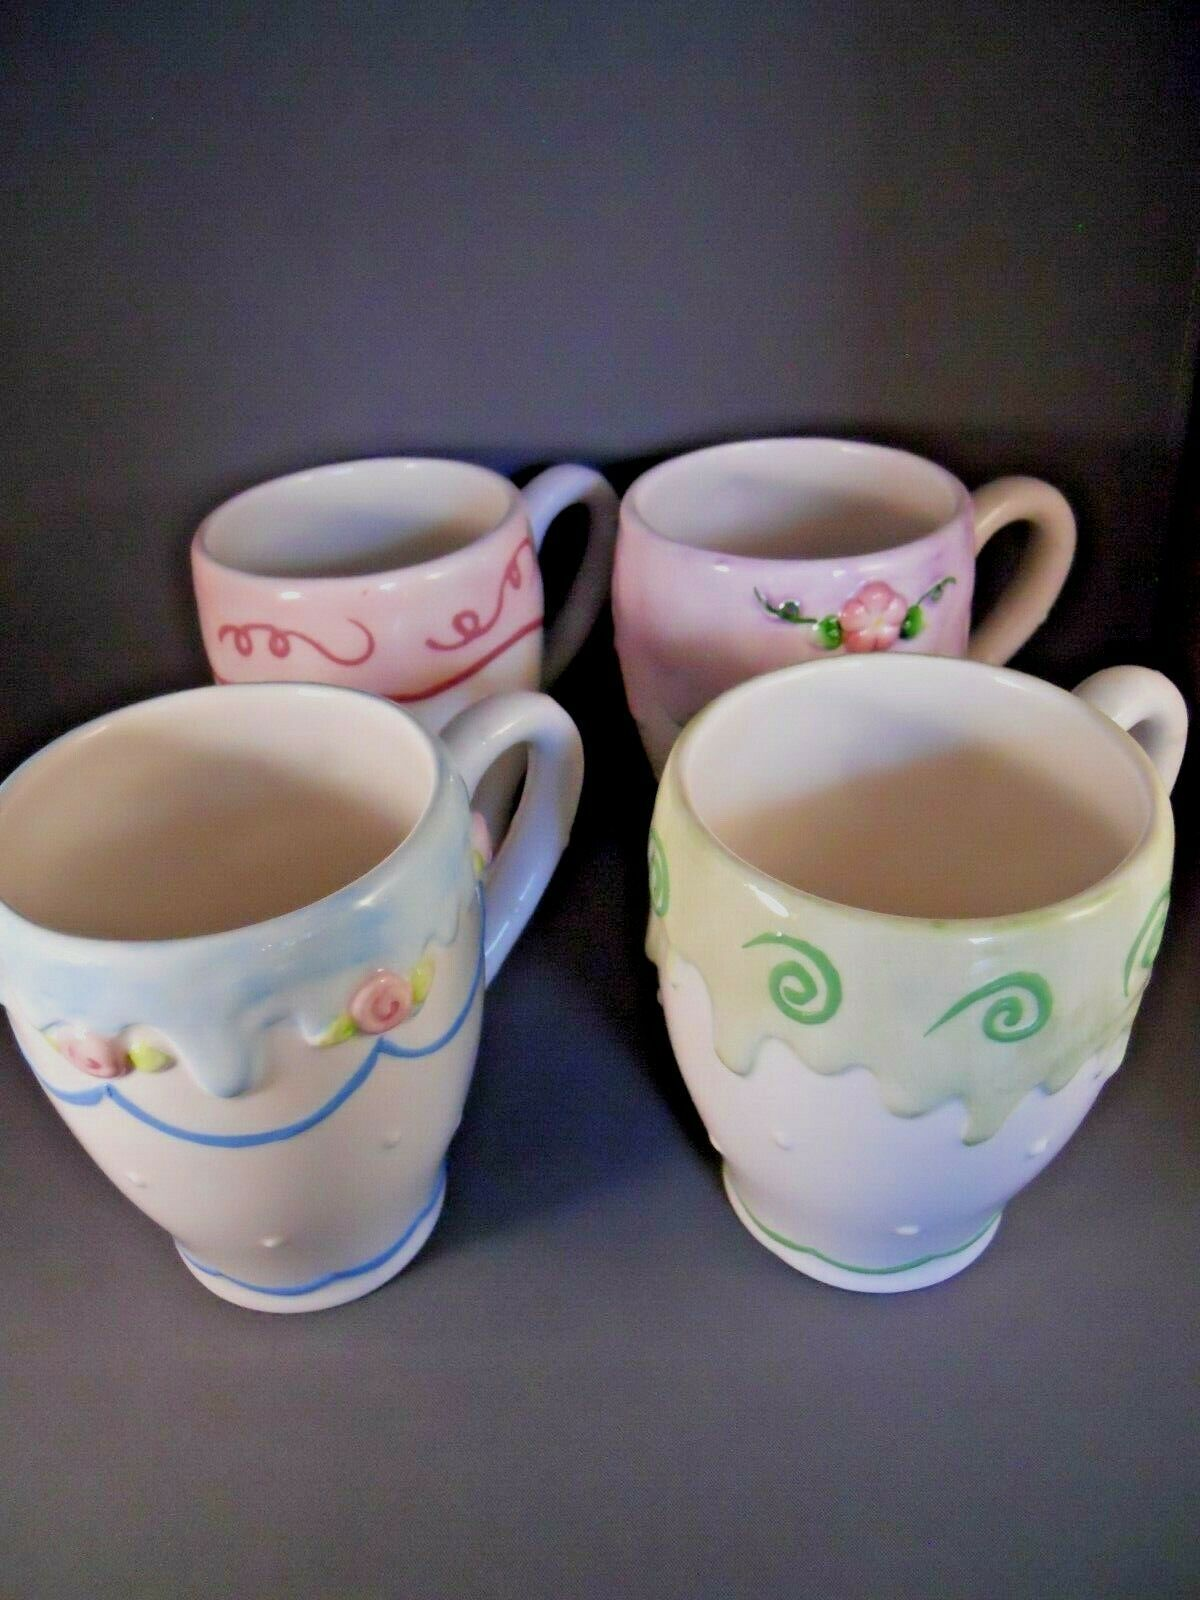 Details about Birthday Set of 4 Coffee Tea Mug Cup Ceramic